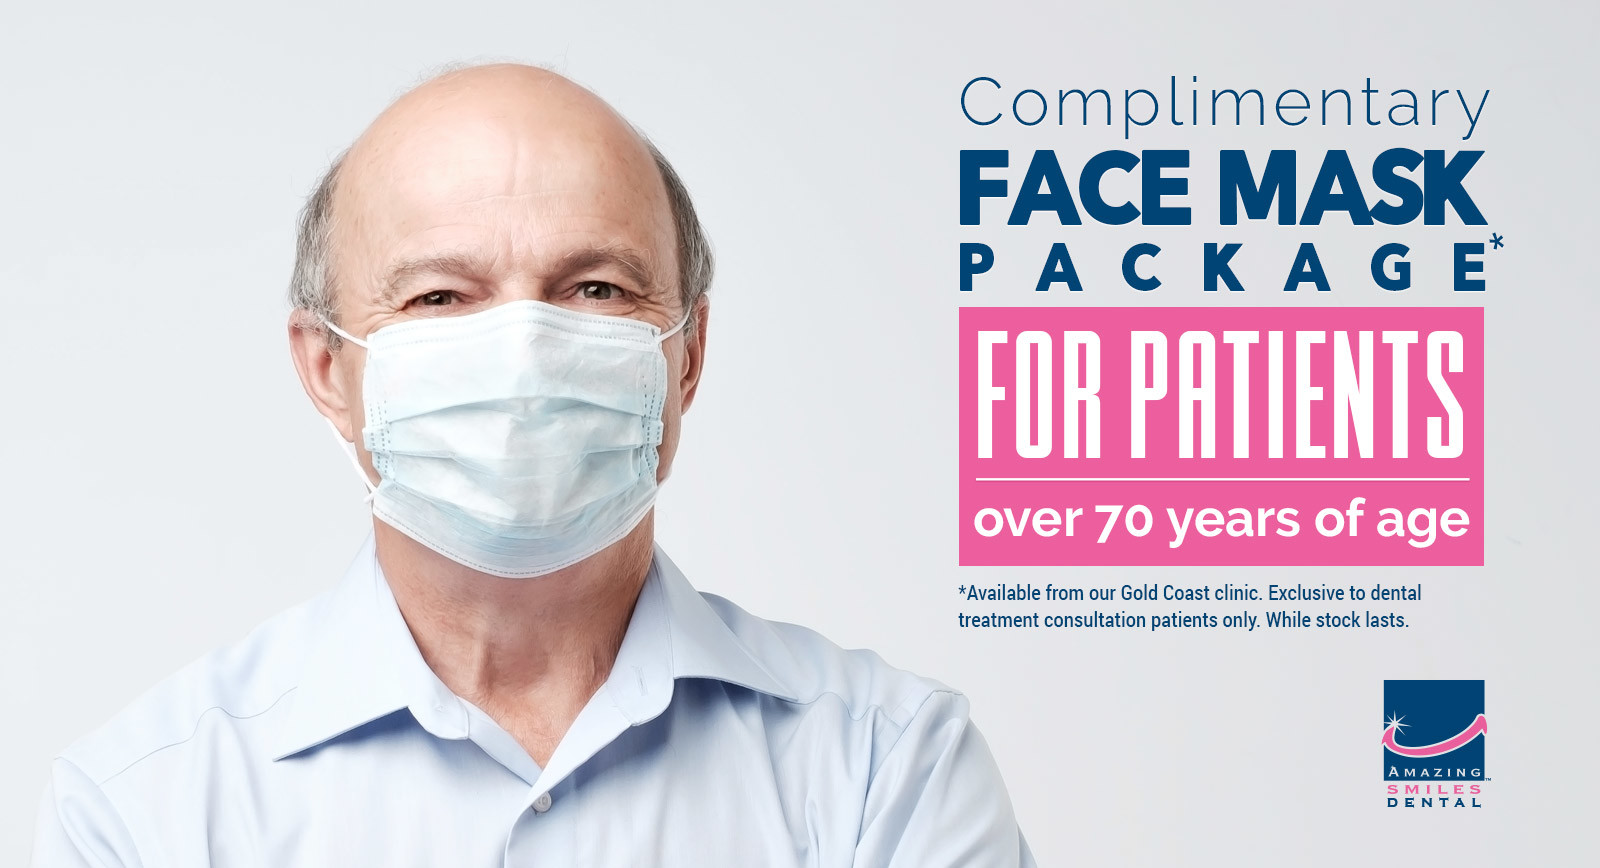 FREE Face Mask Packages to patients 70 and older